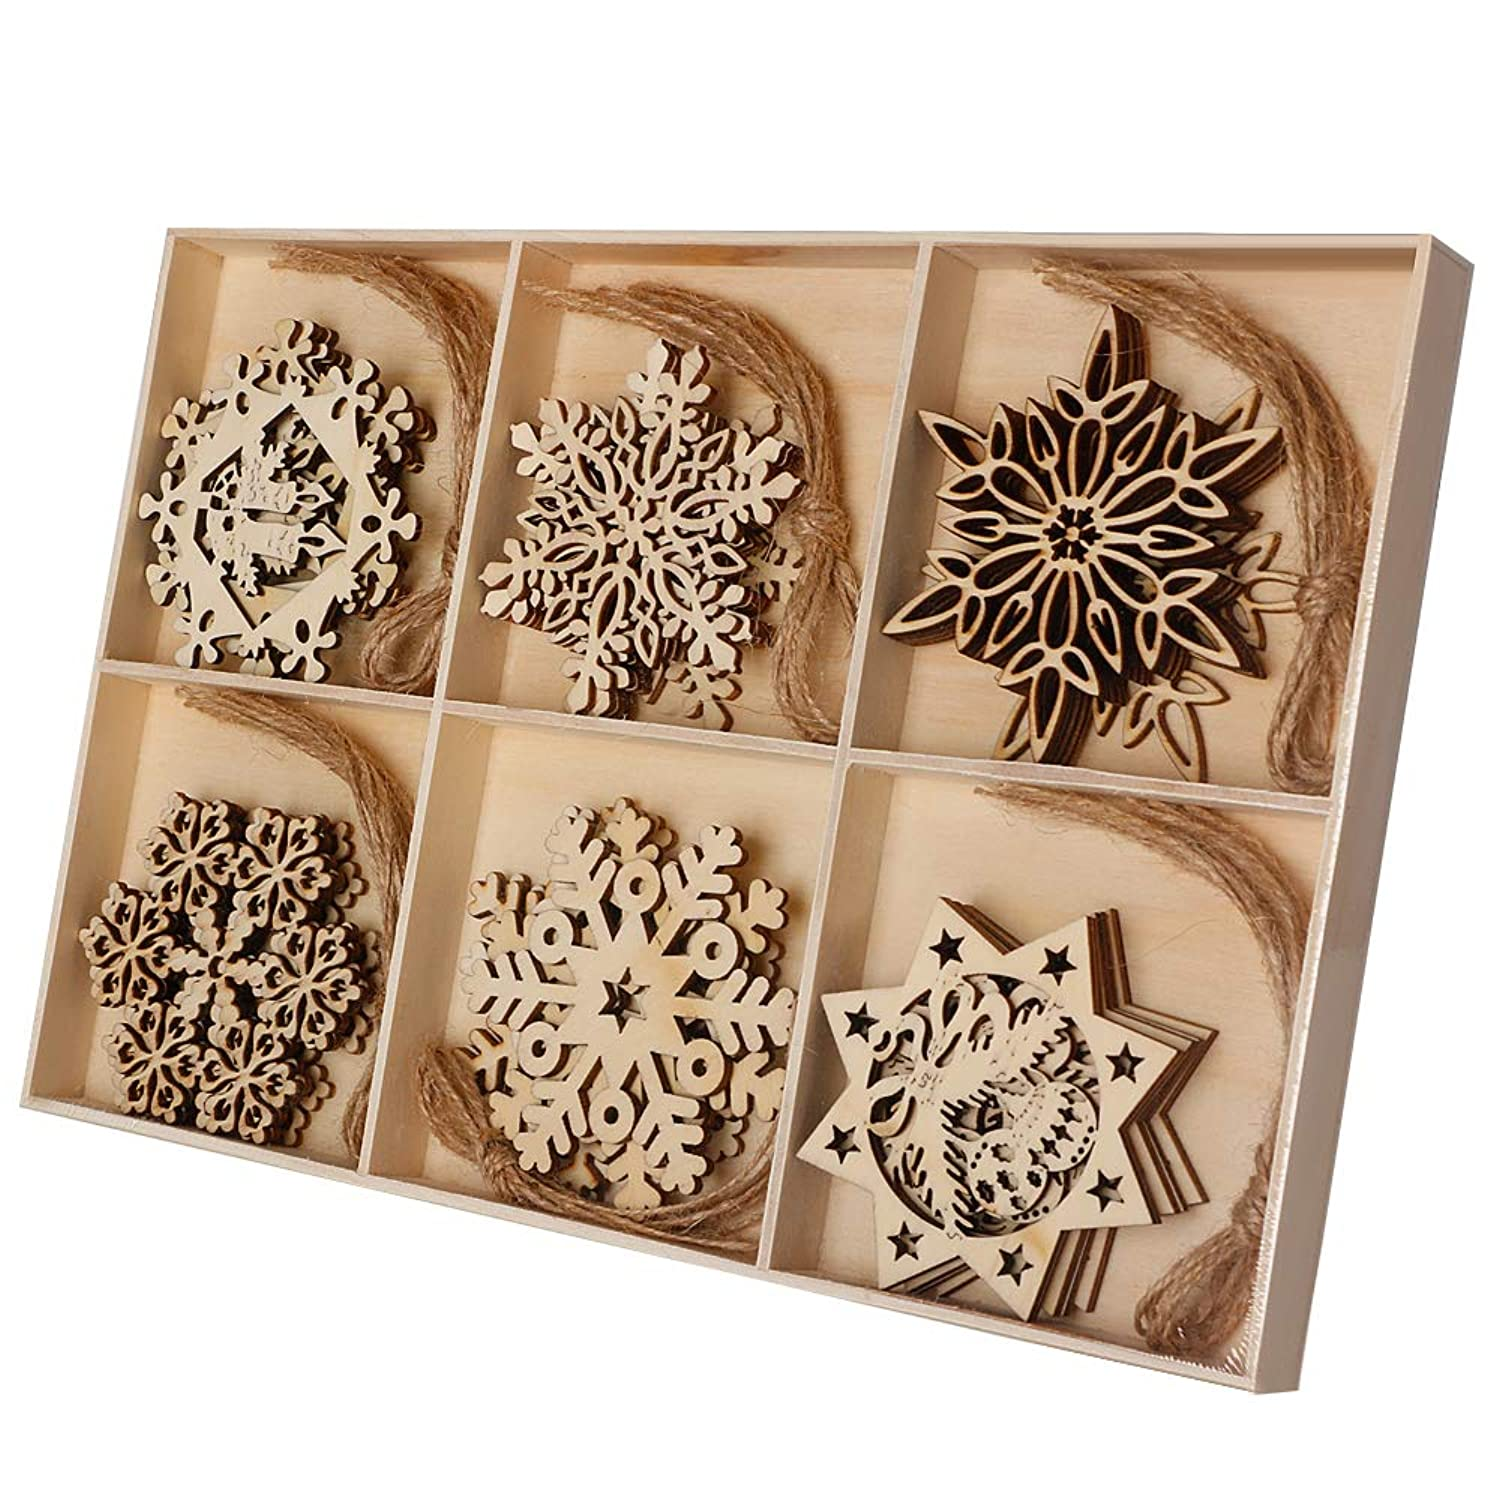 Joy-Leo 2.7-3.3 Inch Wood Coasters & Snowflake Unfinished Wood Cutouts Slices Christmas Ornaments(6 Patterns x 5 Sets=30pcs), with Jute Twine for Crafts and Christmas Tree Pendants Decoration